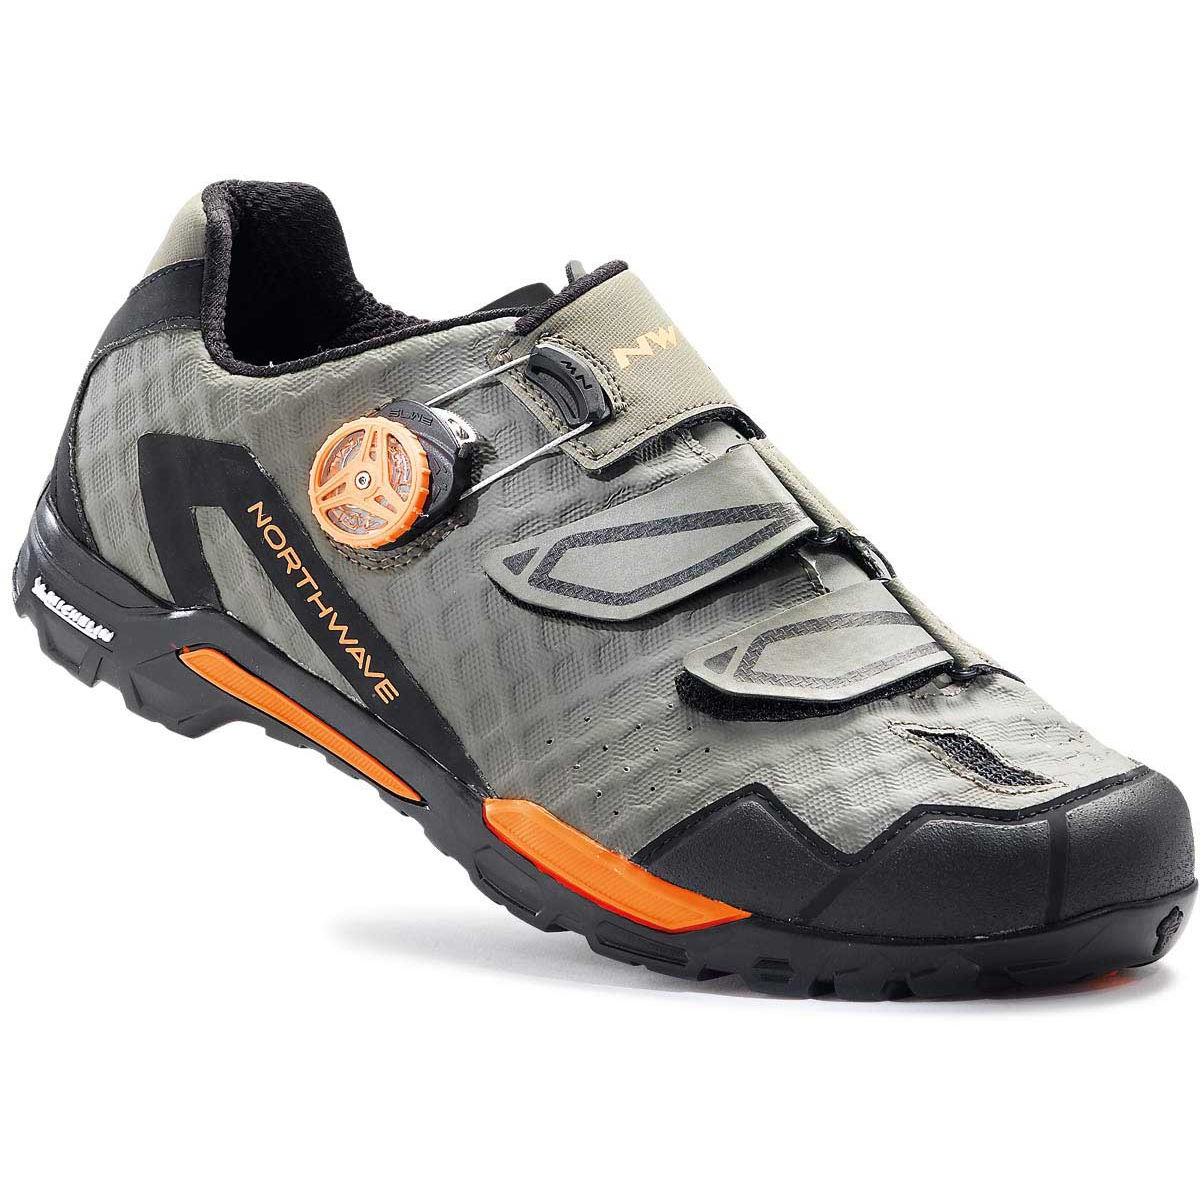 Northwave Outcross Plus Shoes   Offroad Shoes